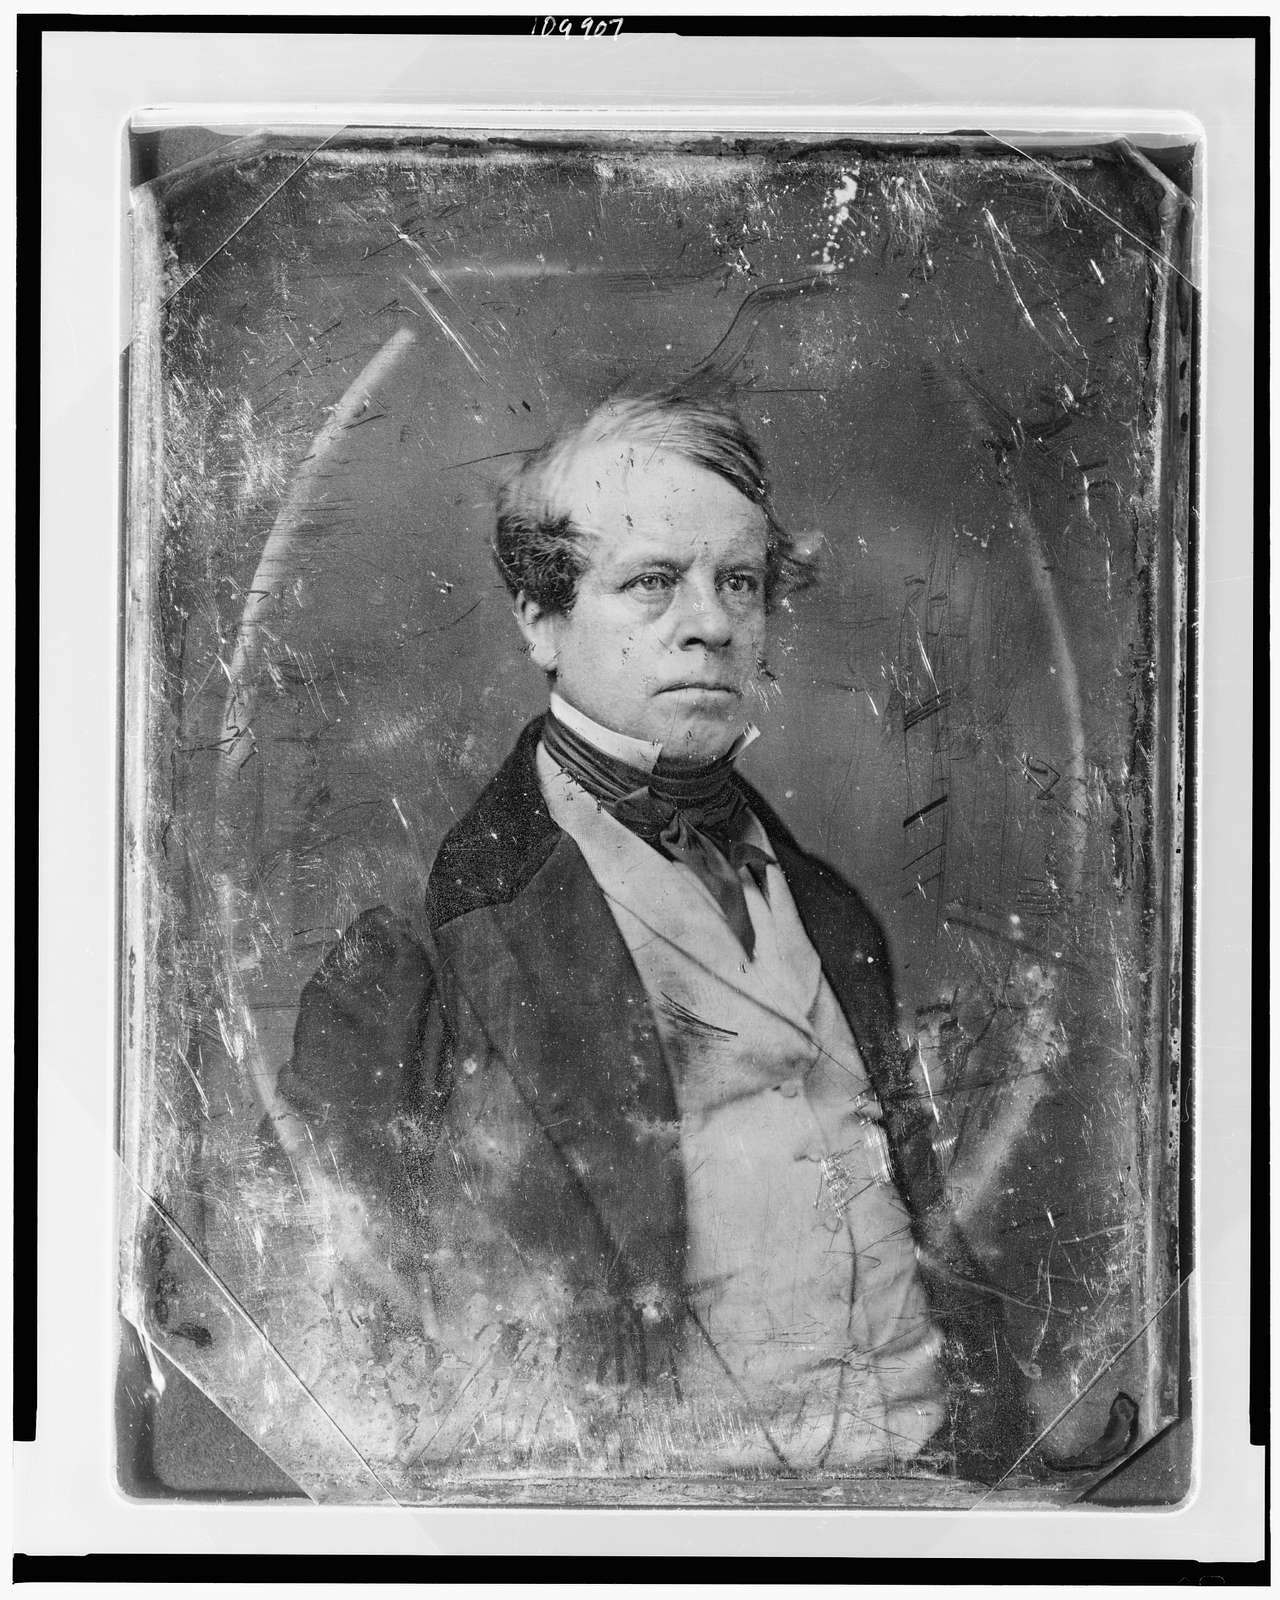 [William Kent, half-length portrait, three-quarters to the right, wearing white waistcoat]